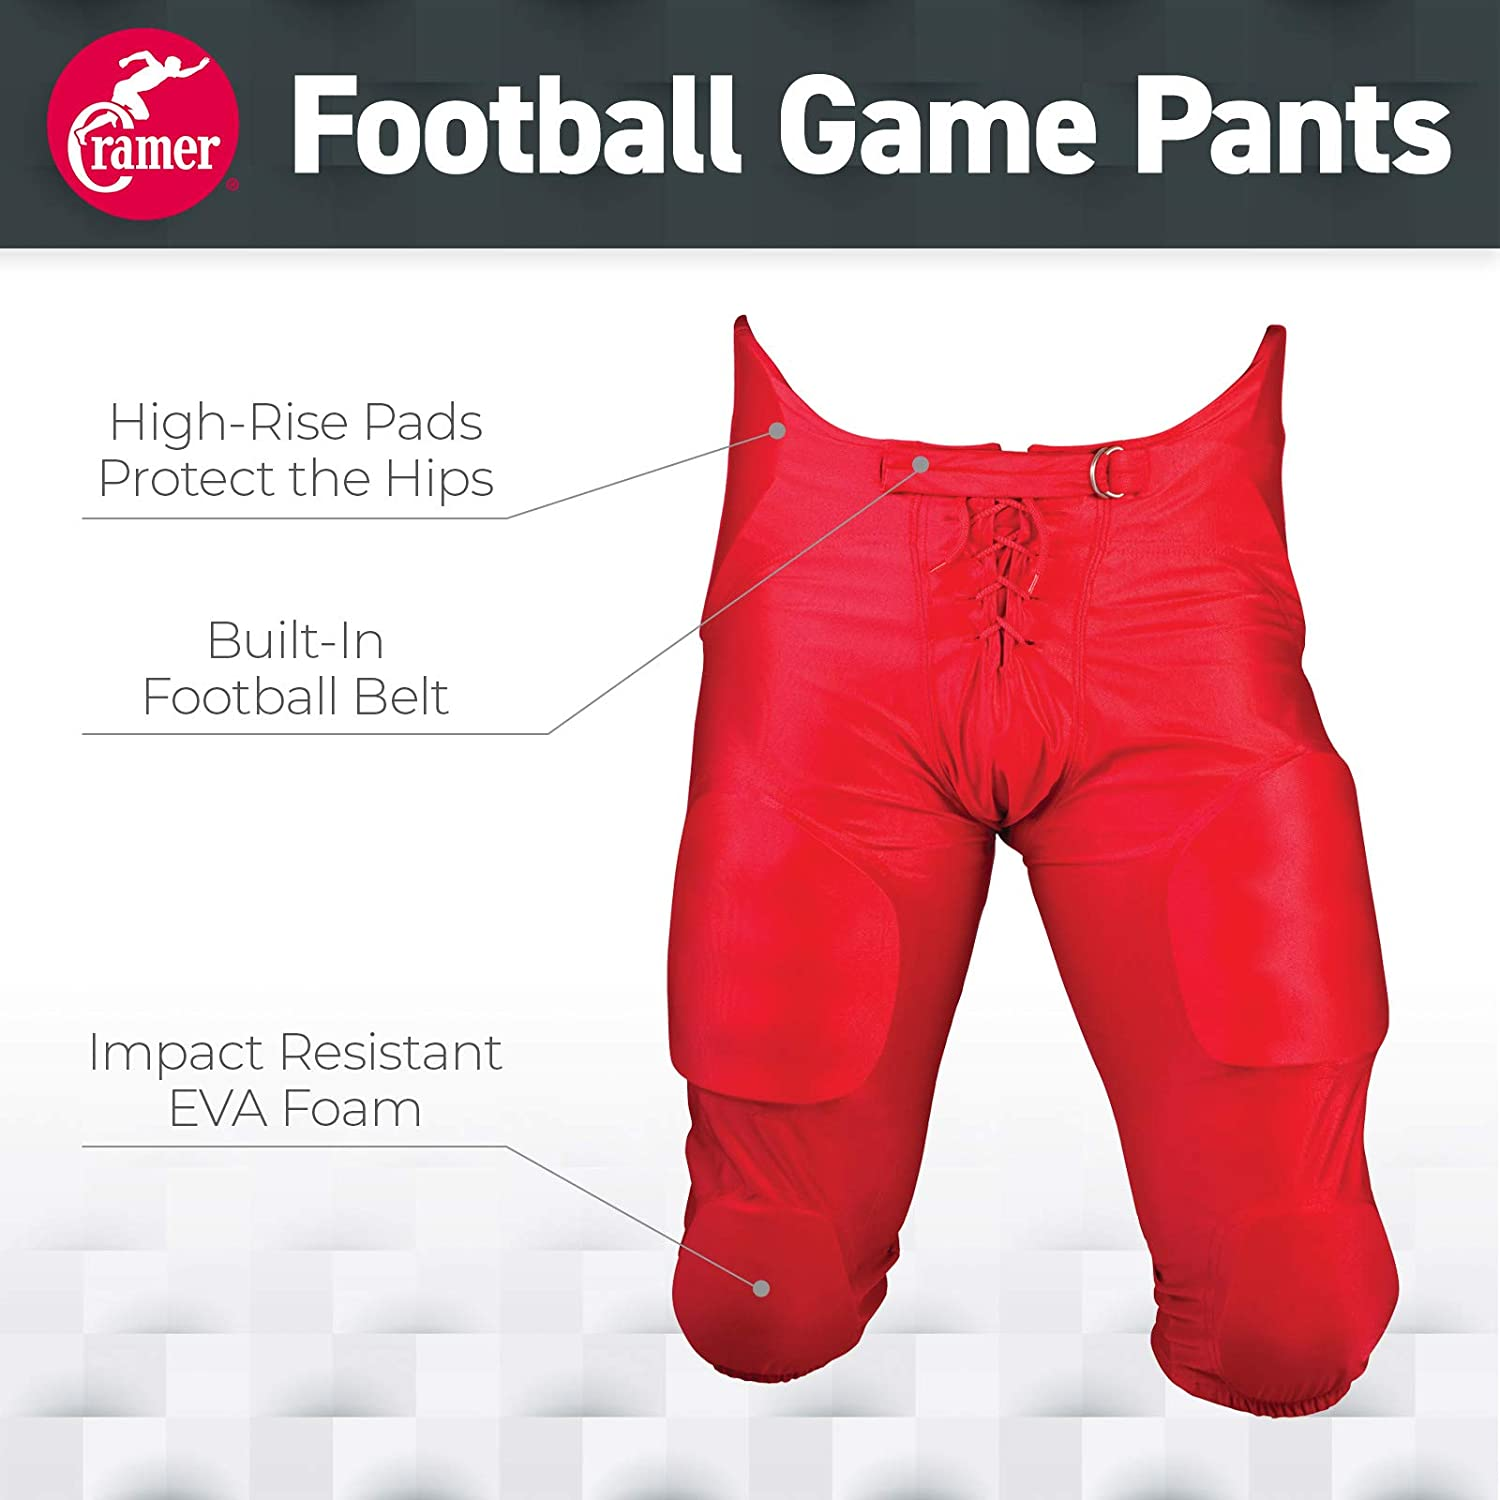 Red Cramer Football Game Pants High-Rise Hip Padding for Iliac Crest Protection 7 Pads with Hip Thigh Designed for High-Impact Youth Medium Youth Football Gear and Knee Pads Tailbone